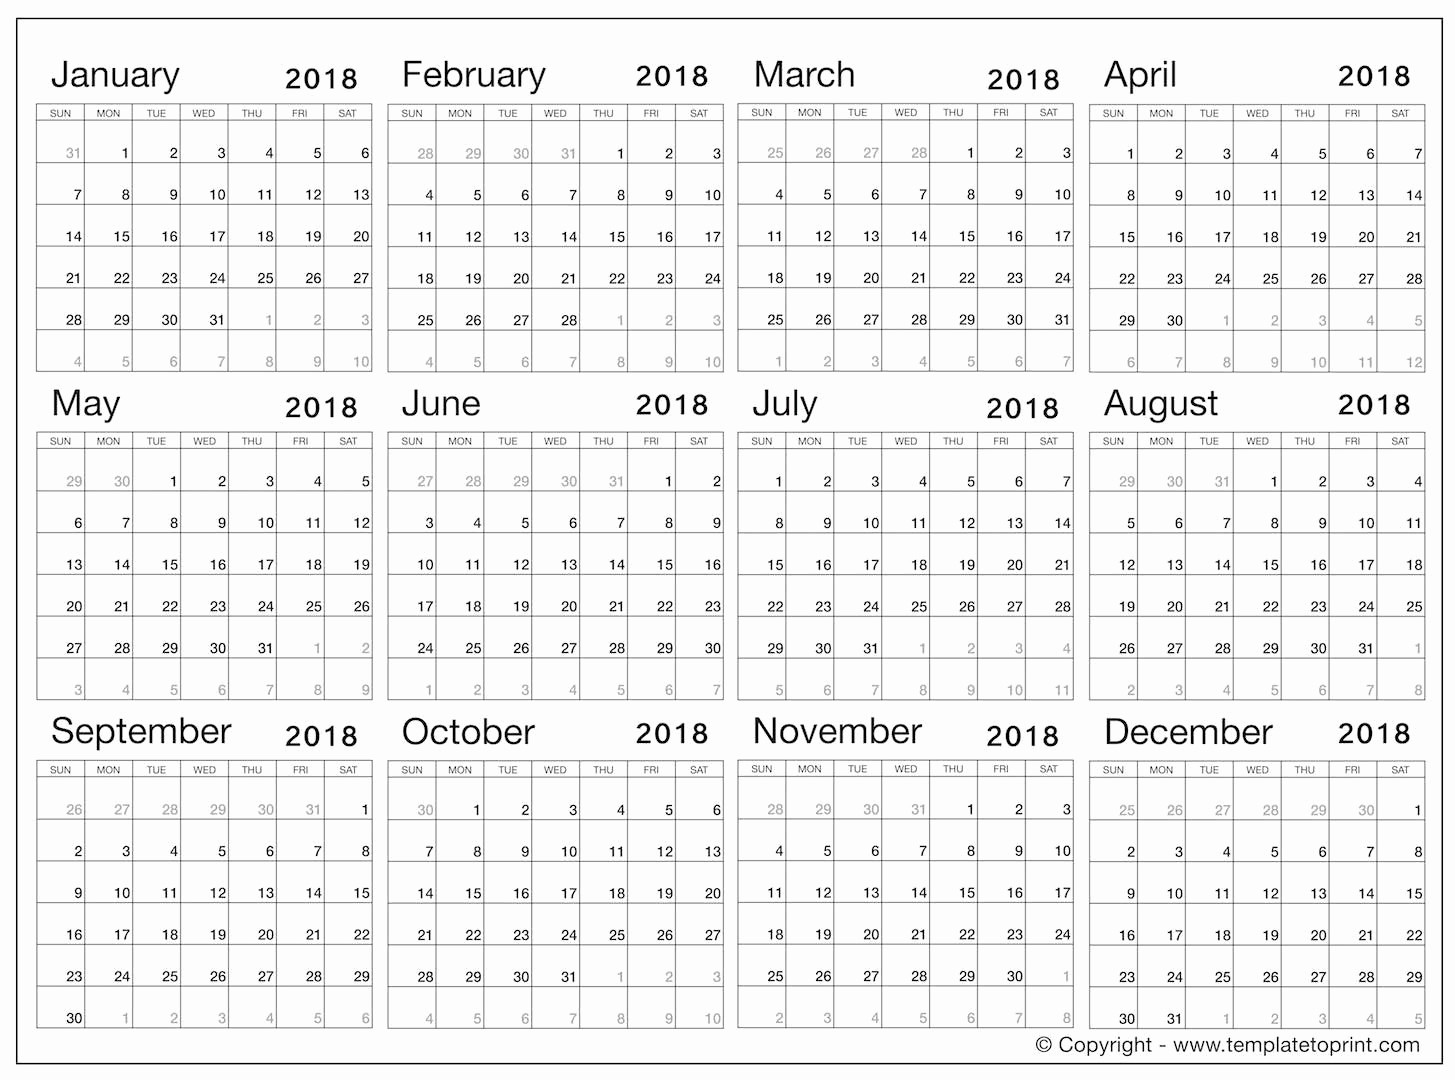 Calendar that I Can Edit Fresh 2018 Calendar Template Word 2018 Calendar Template to Edit